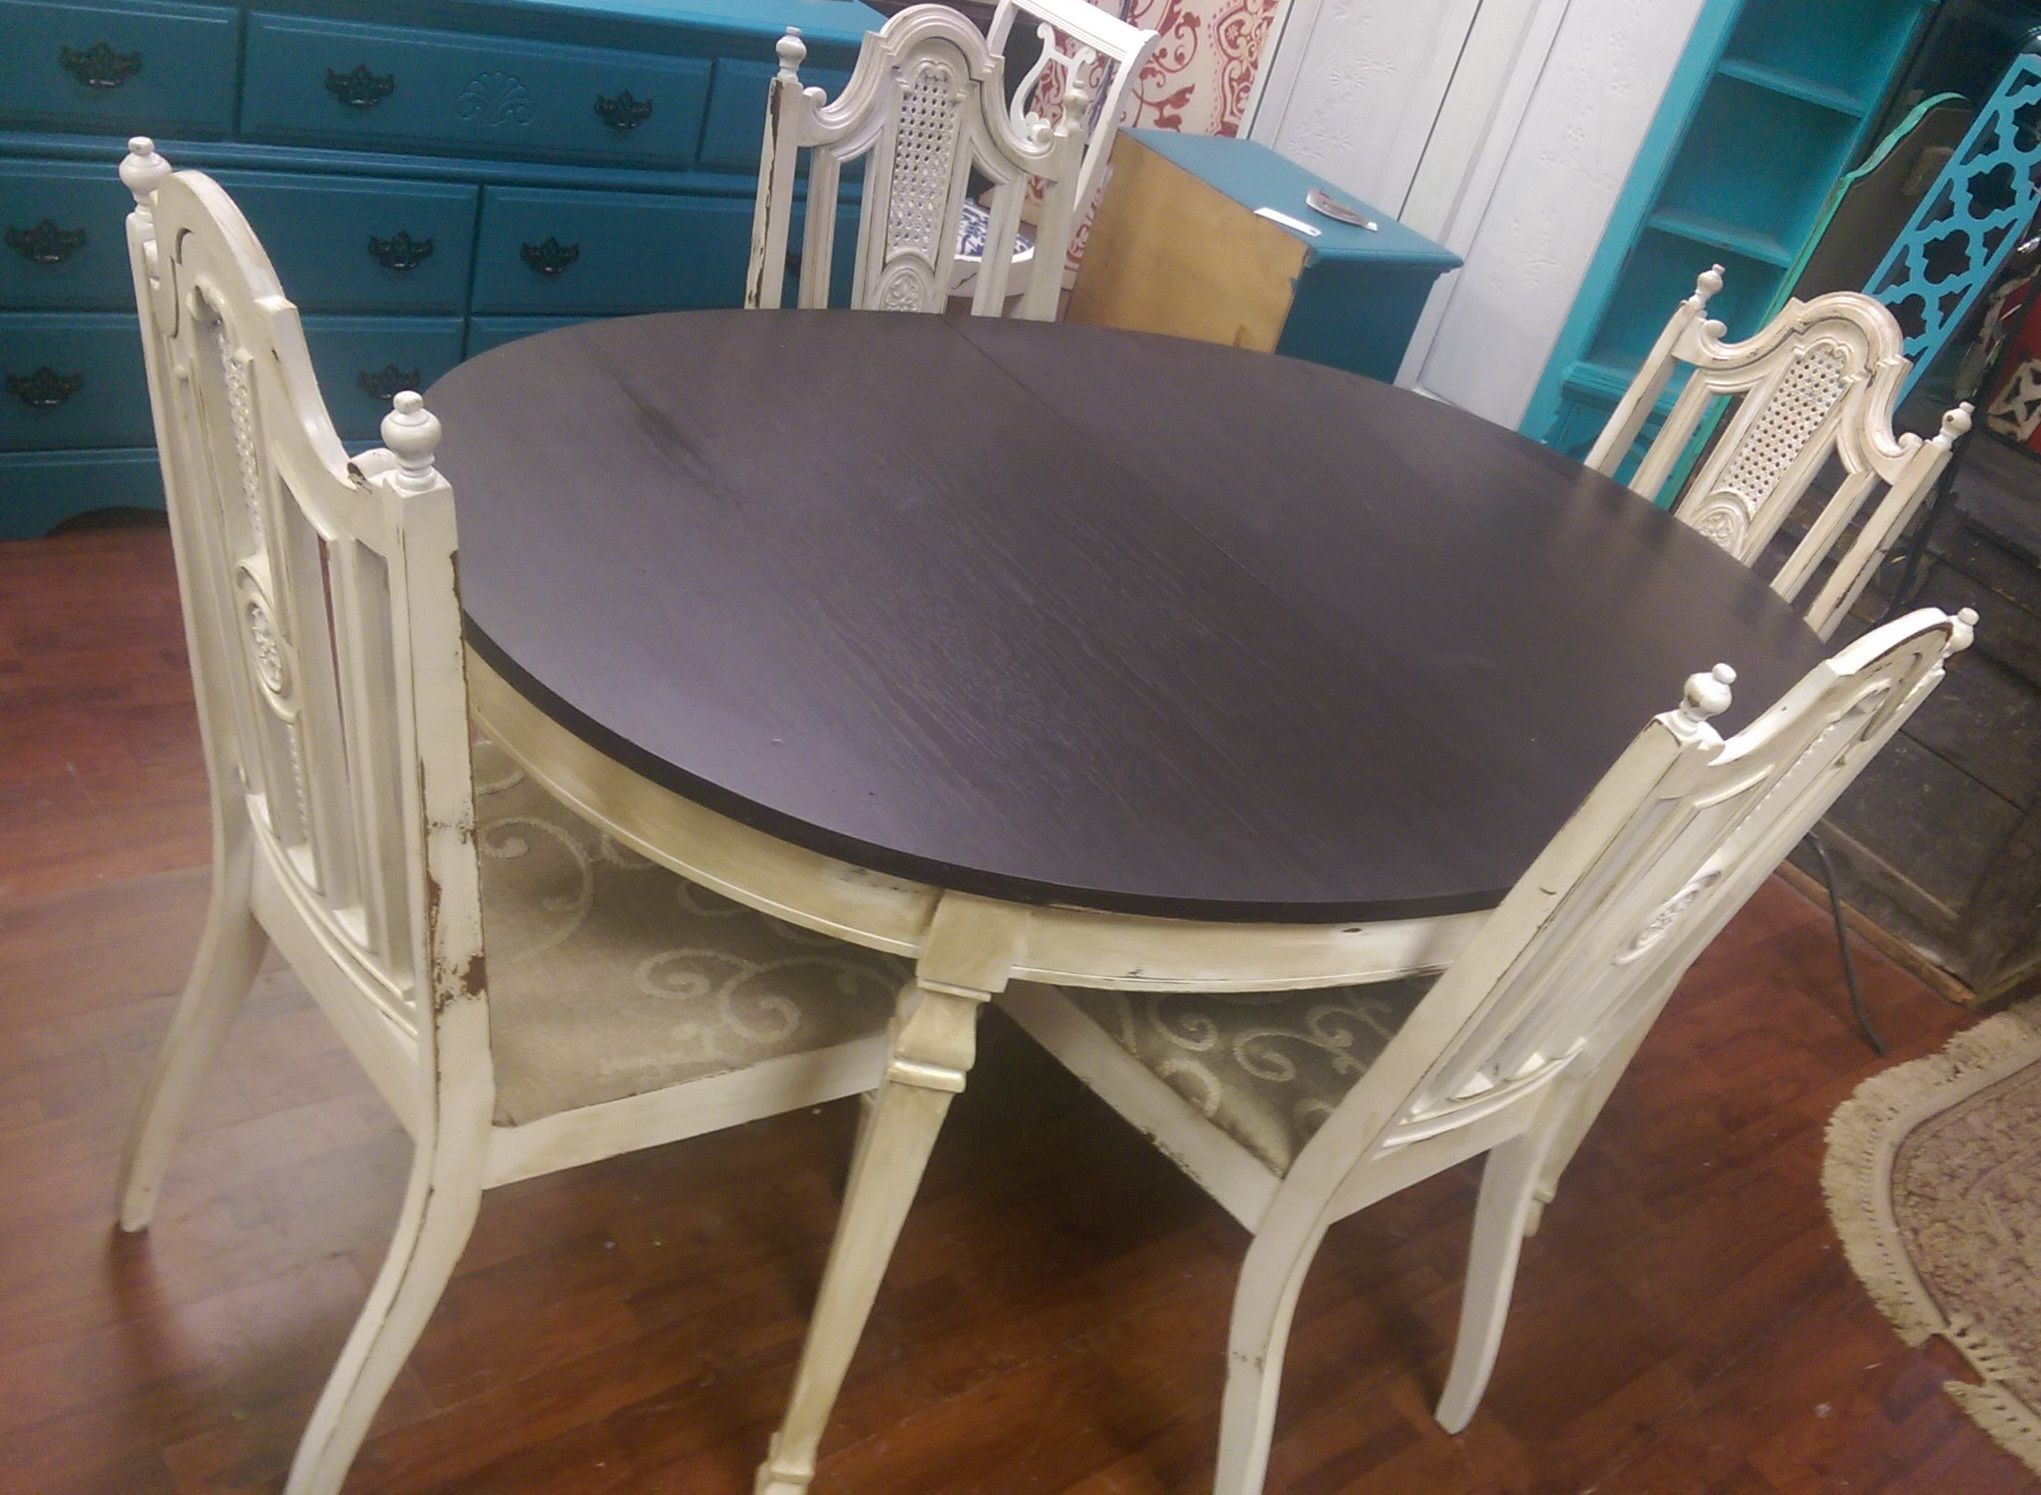 Do You Need A Cute Little Table And Chairs Here You Go Smile Emoticon Lol It Doesn T Come With A French Country Furniture Shabby Chic Dining French Furniture